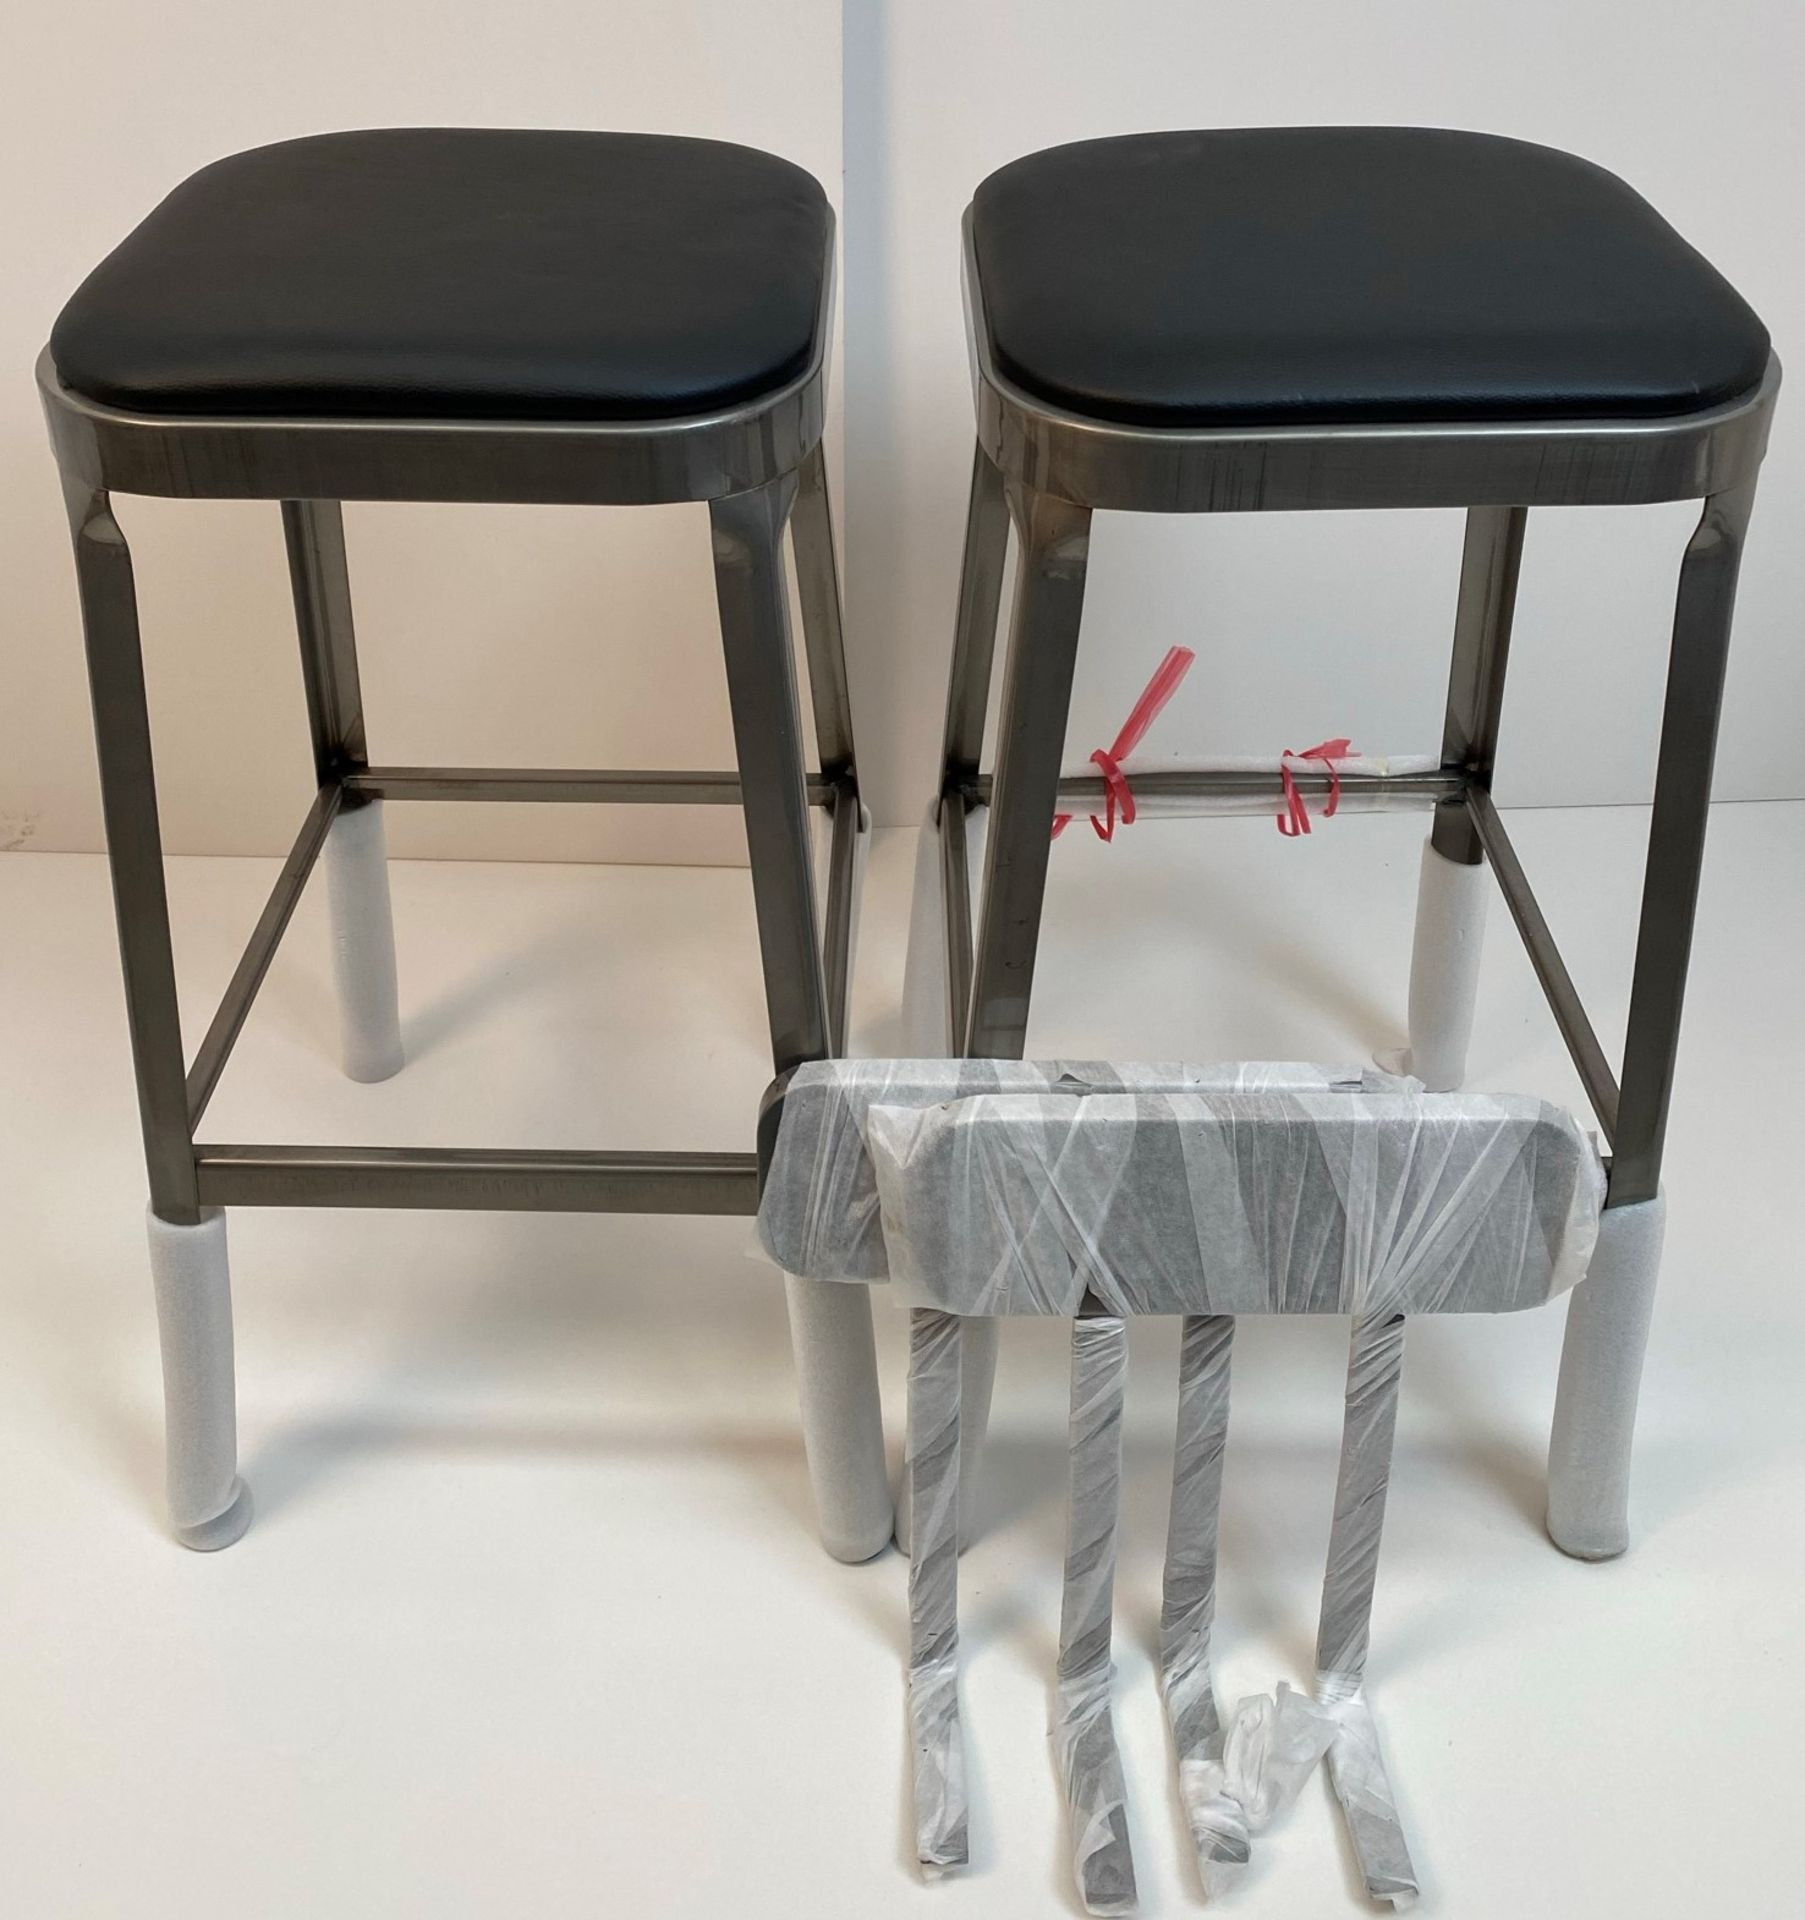 2 x Calypso Brushed Transparent Finish Metal Framed High Bar Stools with Black Pad and Optional